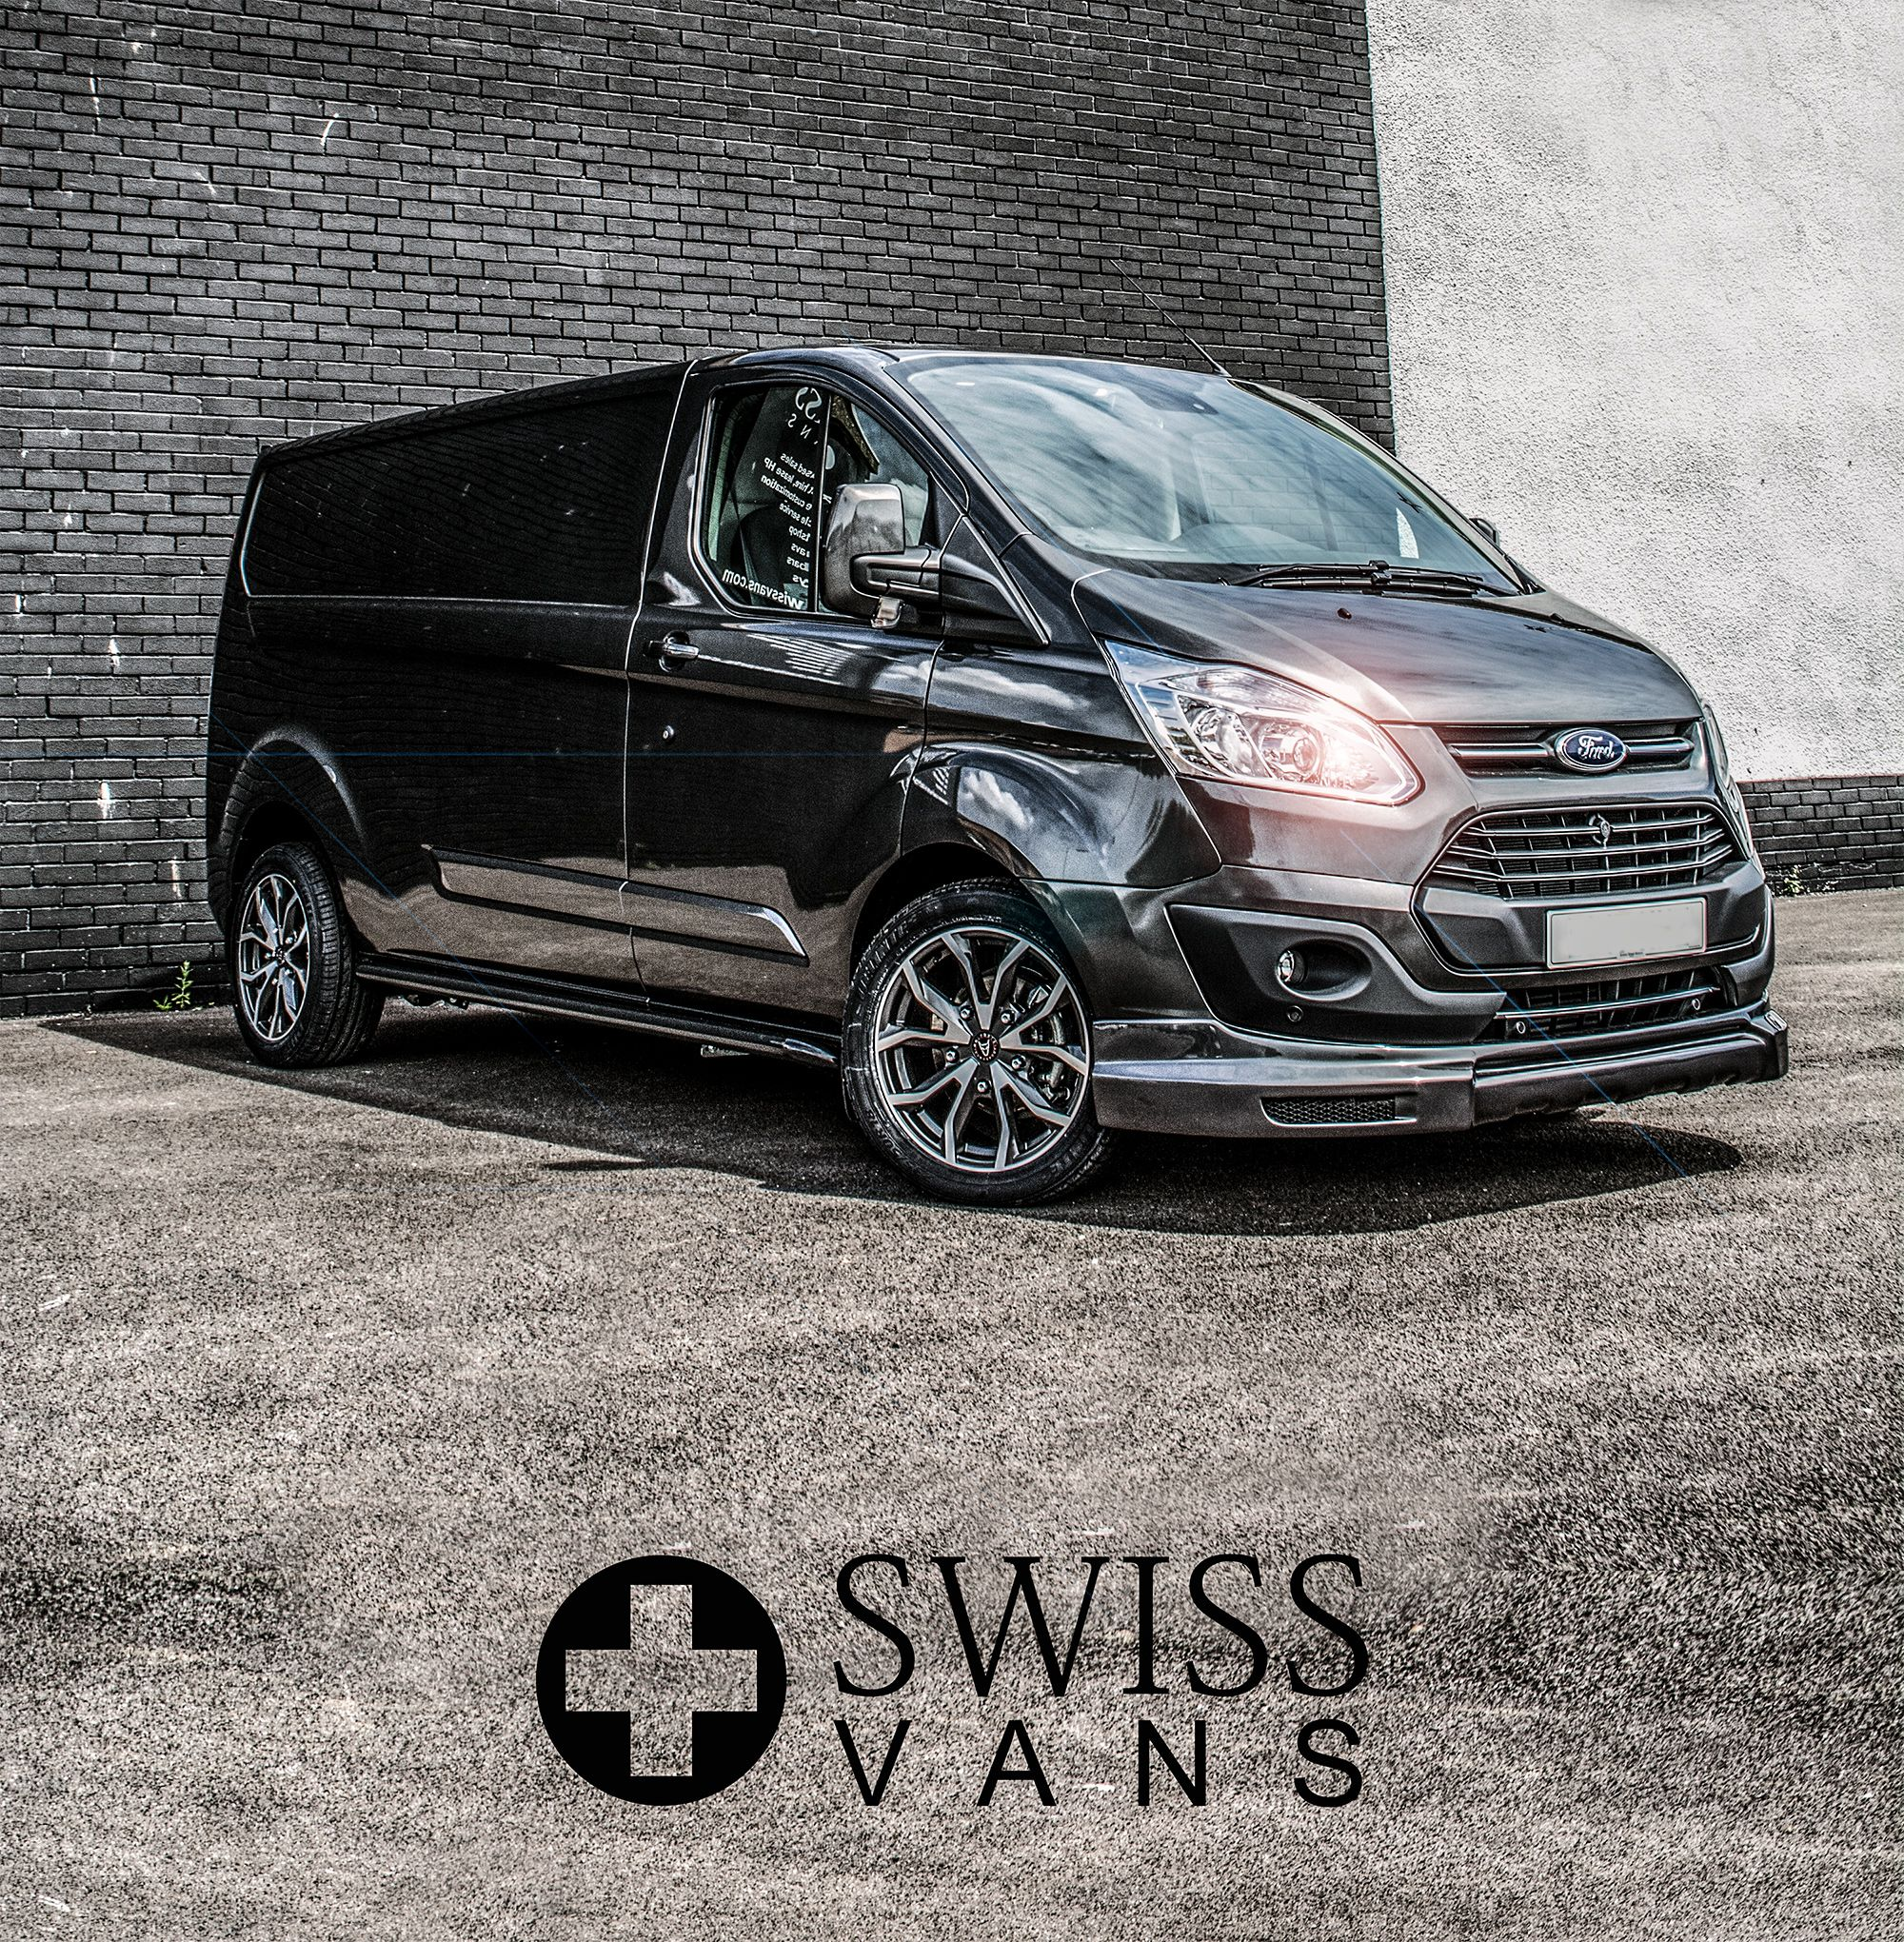 c564640cc7  Ford Transit Custom lease Apply for the cheapest New Ford Transit Lease  Deals in the UK   Whether it s the base model